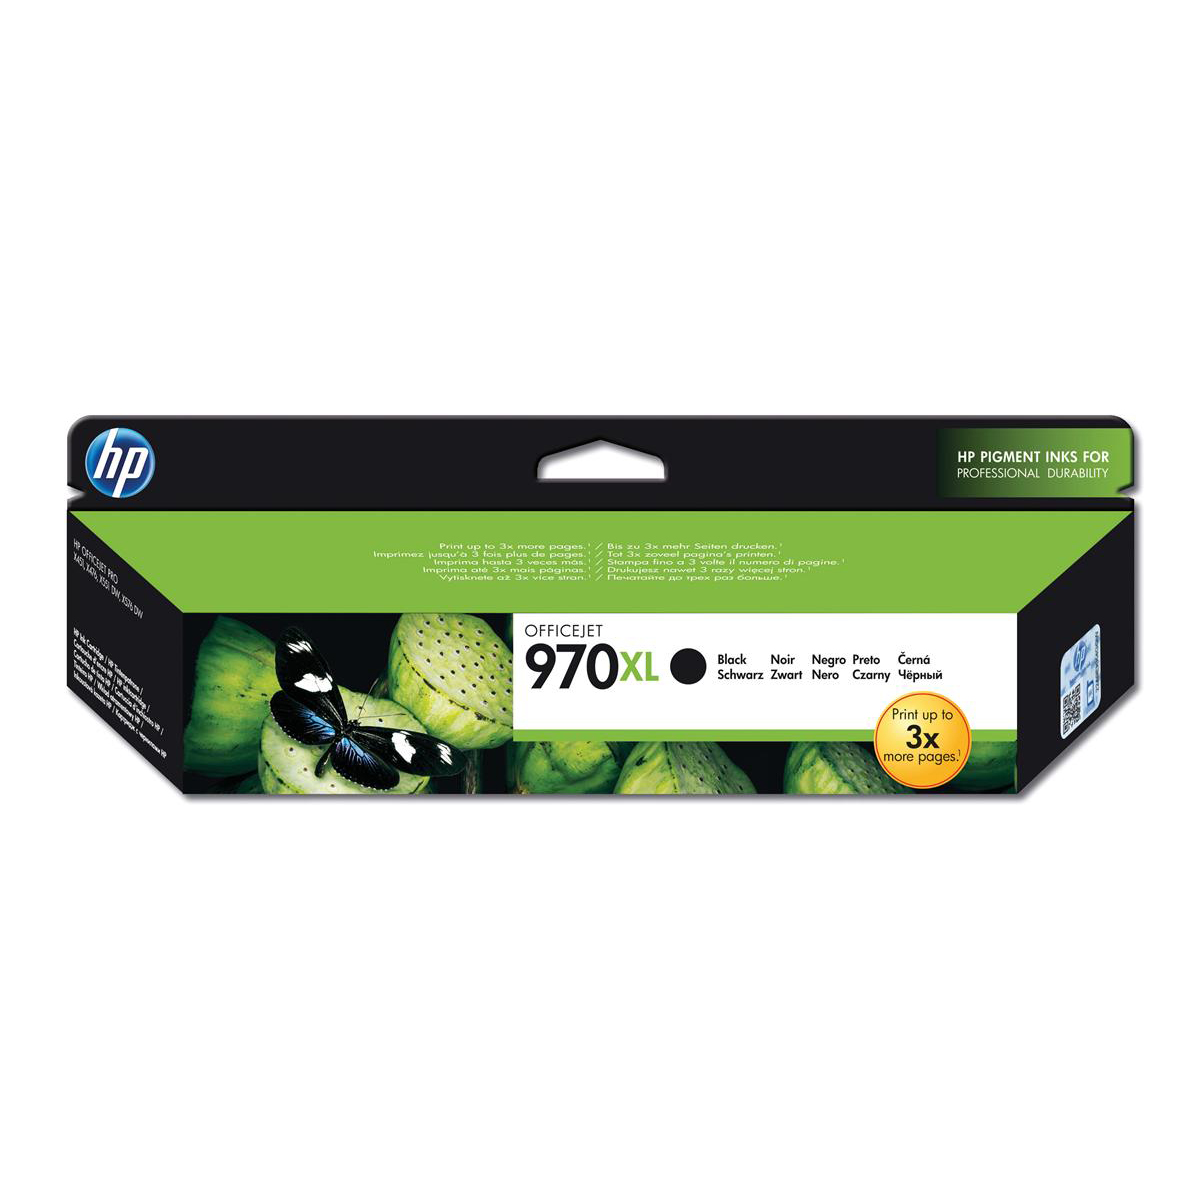 Hewlett Packard [HP] No. 970XL Inkjet Cartridge Page Life 9200pp Black Ref CN625AE